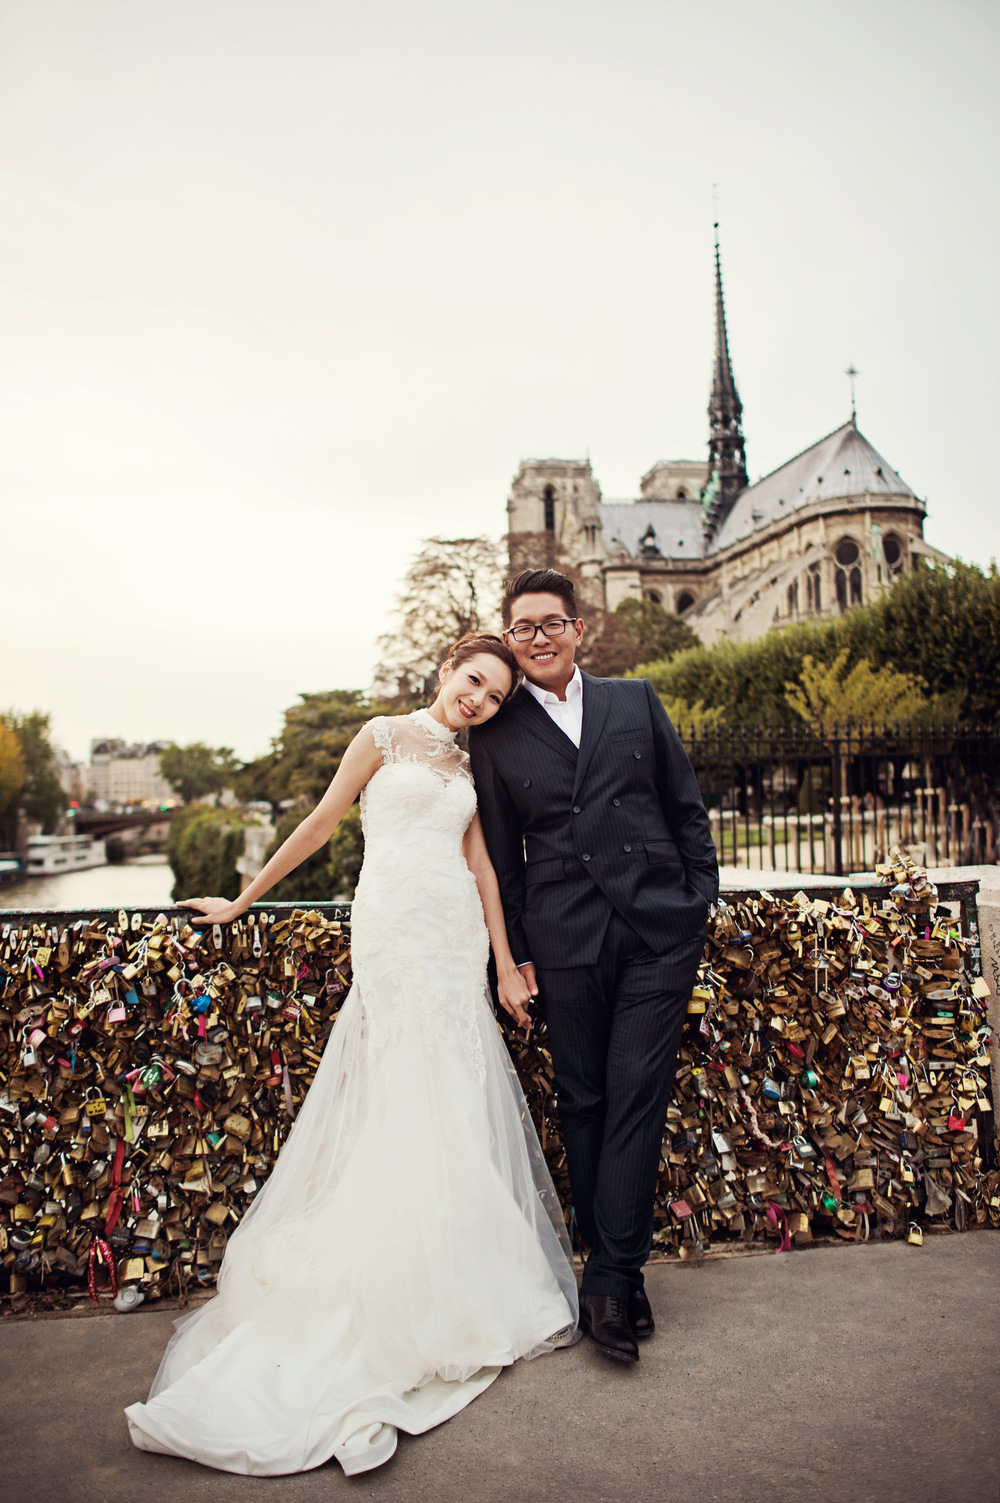 Chris_Hui_Paris_Prewedding_Photography208.jpg